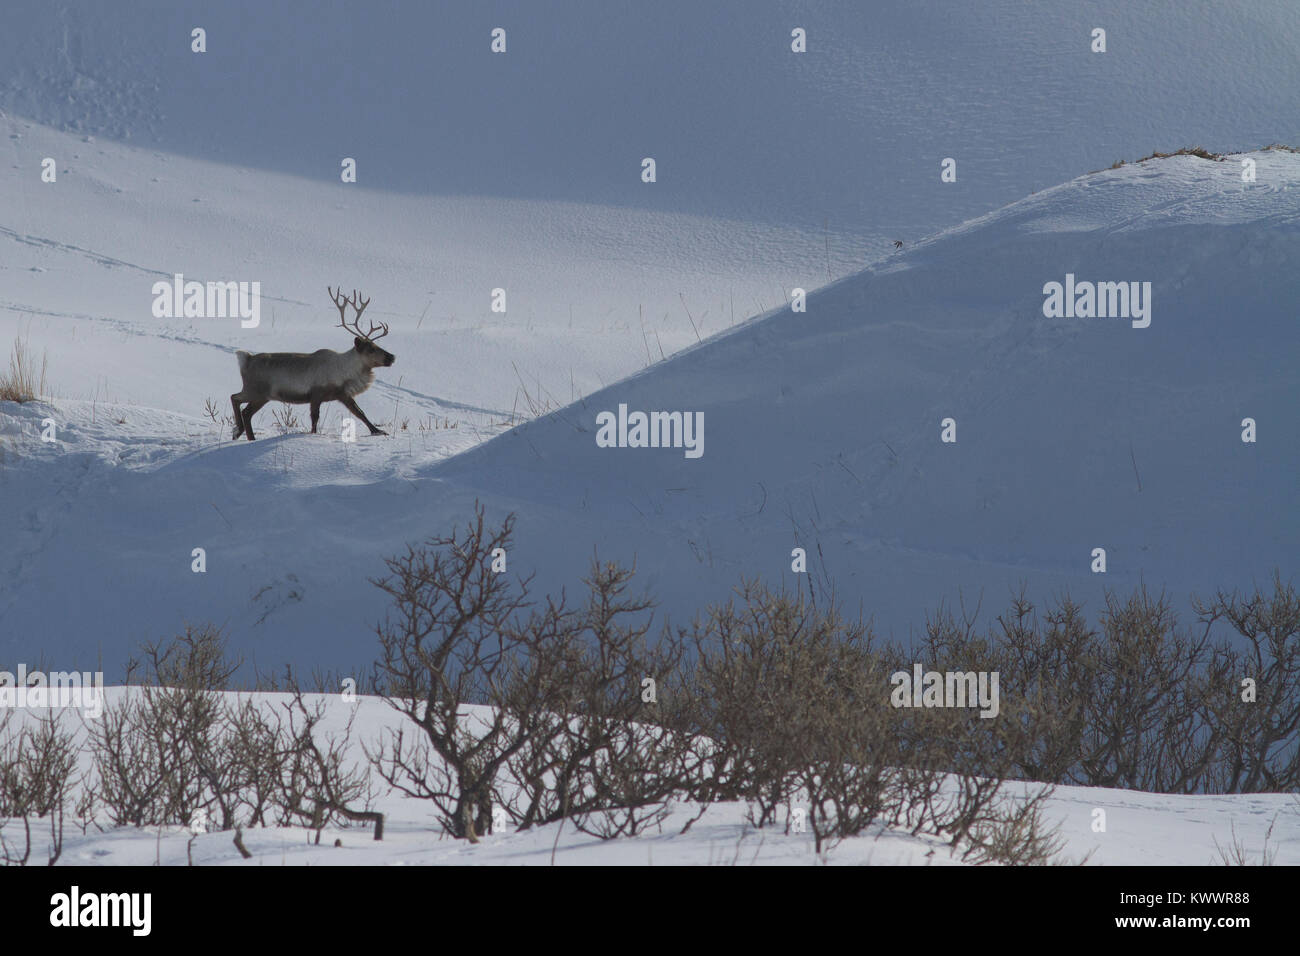 Reindeer walking along the edge of the hill in the winter - Stock Image